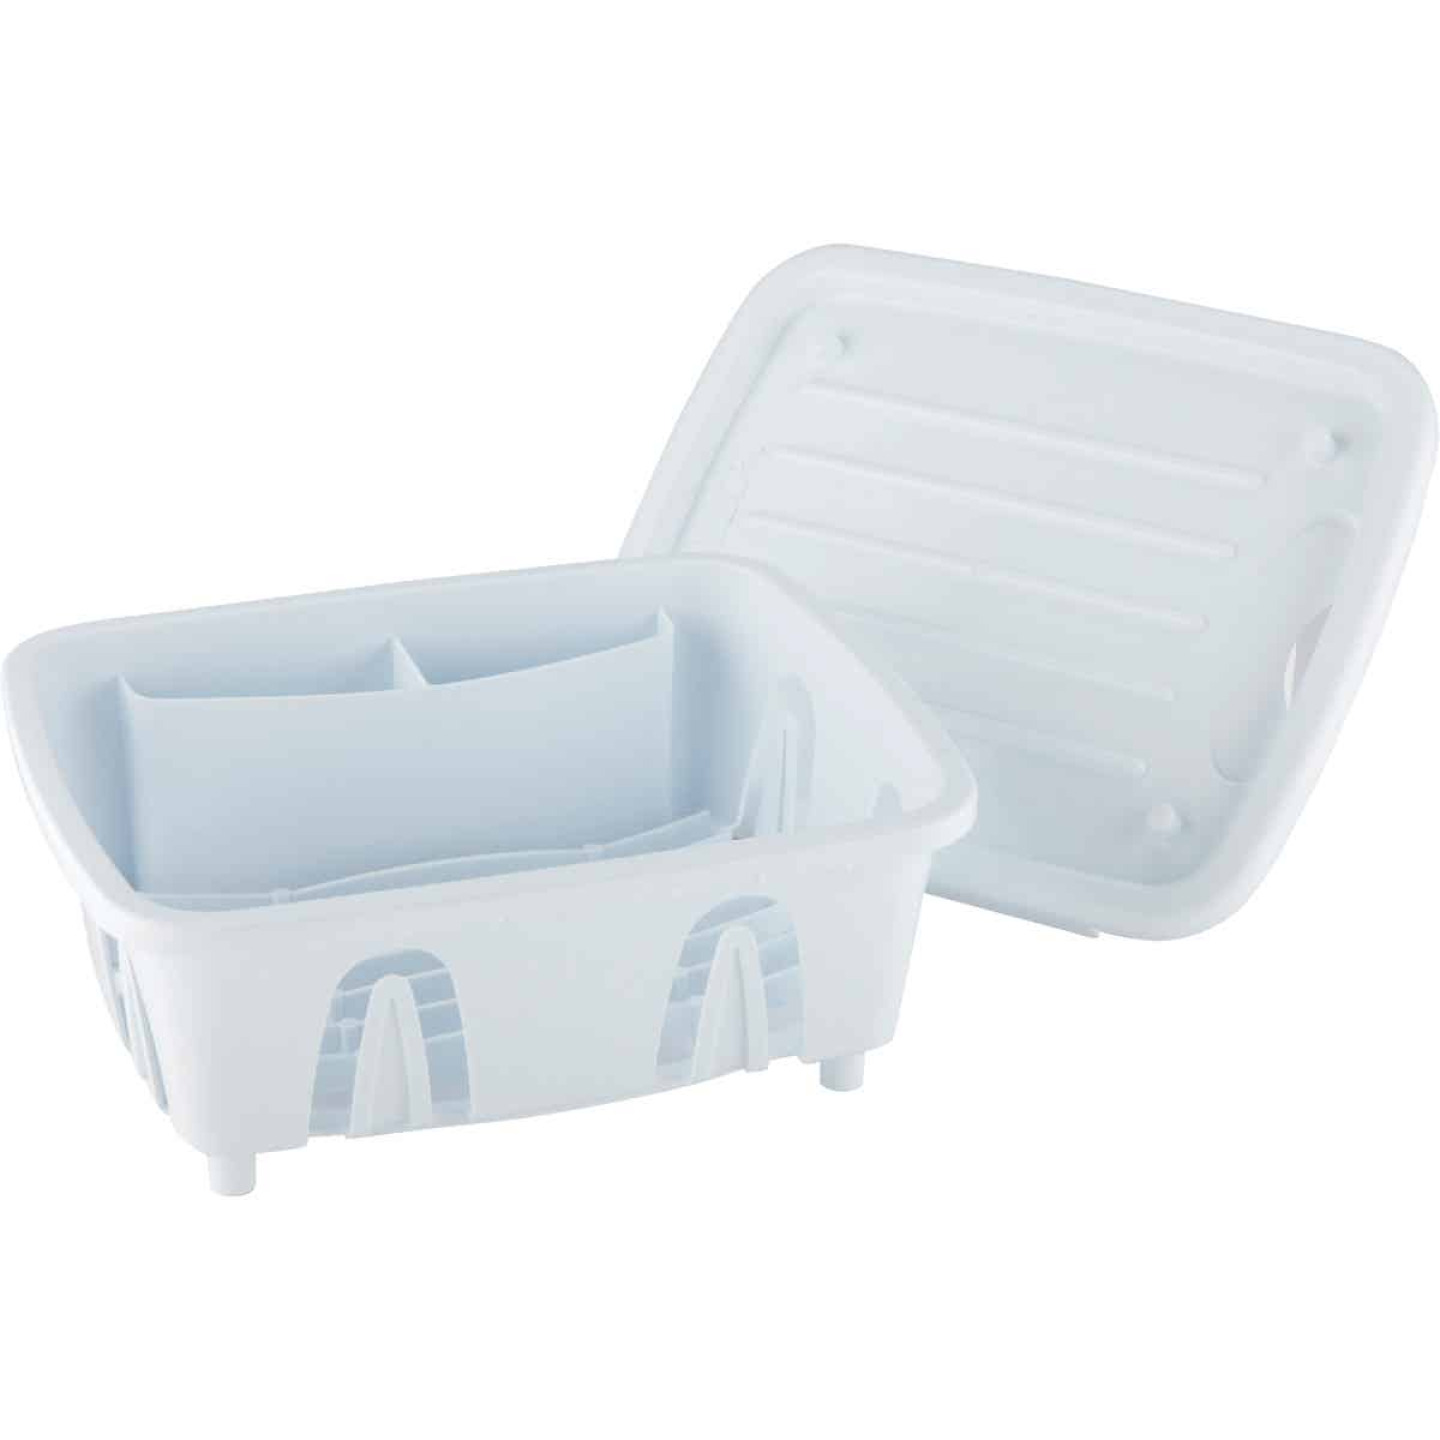 Camco Heavy-Duty Plastic 9.50 In. x 11.69 In. White RV Dish Drainer Image 1